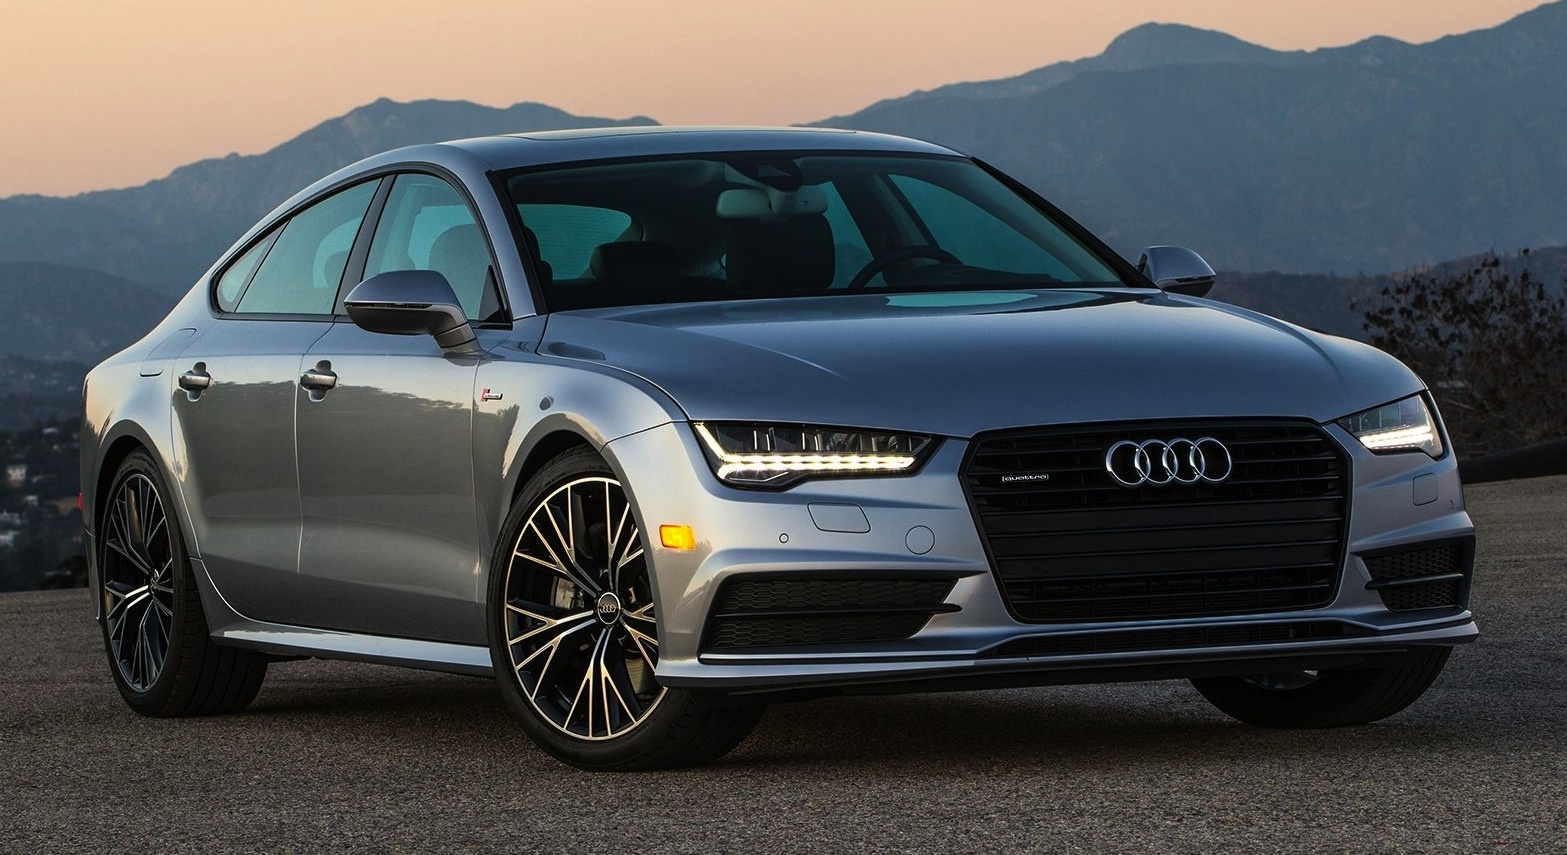 2016 2017 Audi A7 For Sale In Your Area Cargurus